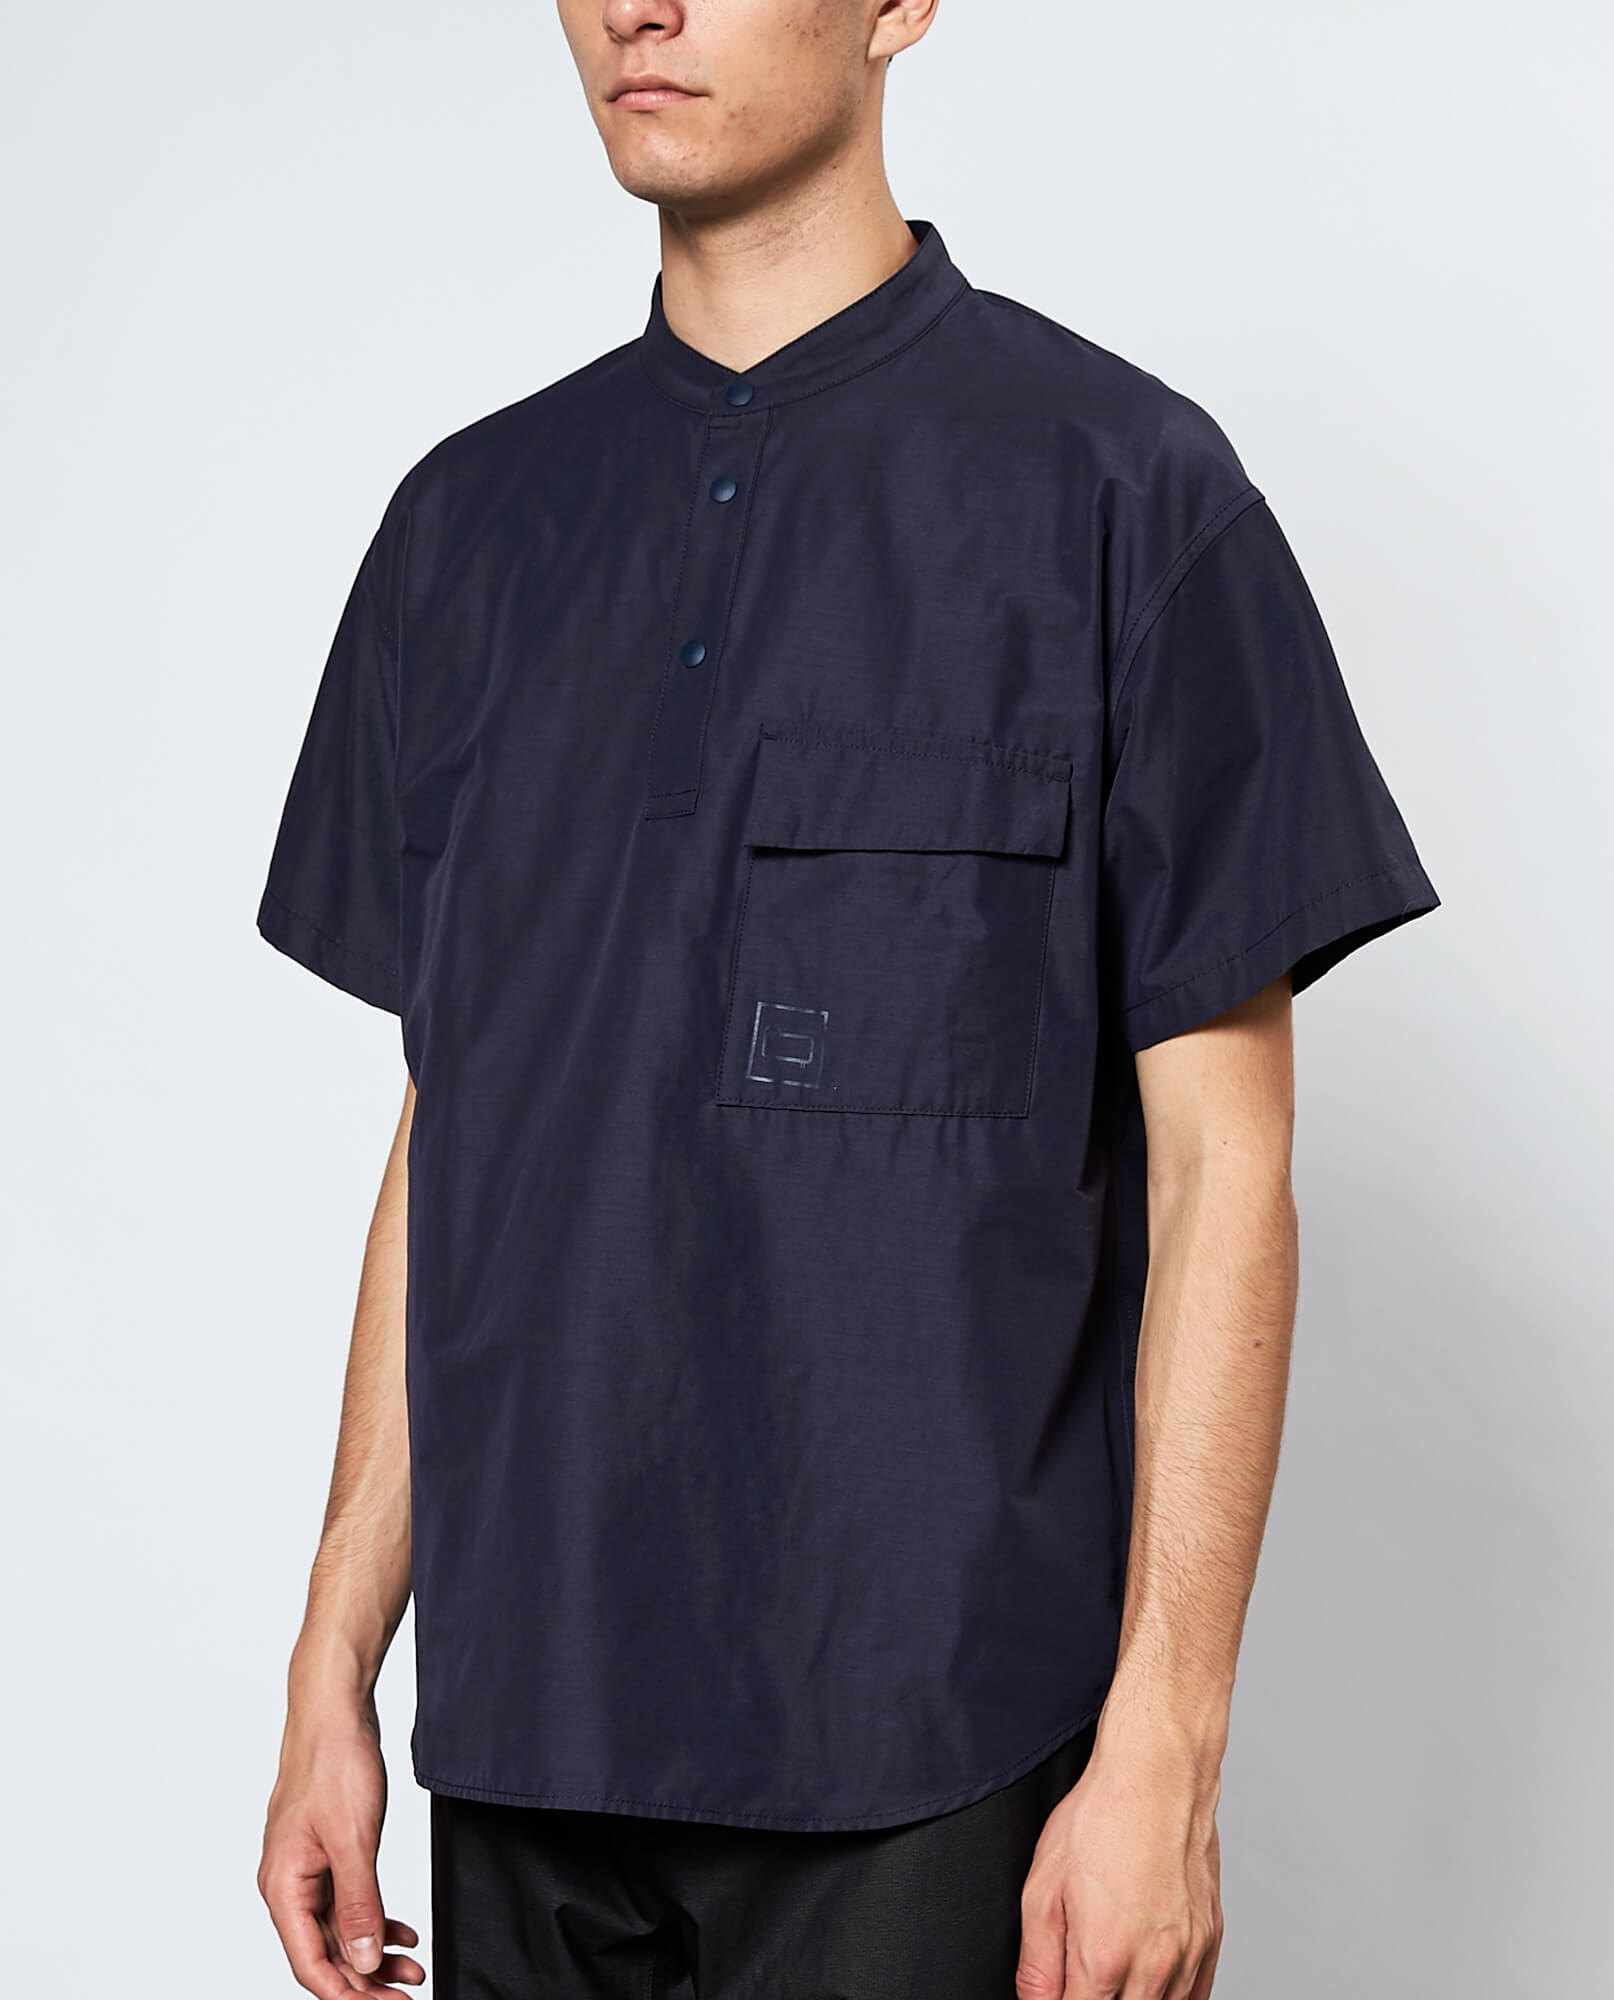 CORDURA×WOOL  SHORT SLEEVE SHIRT